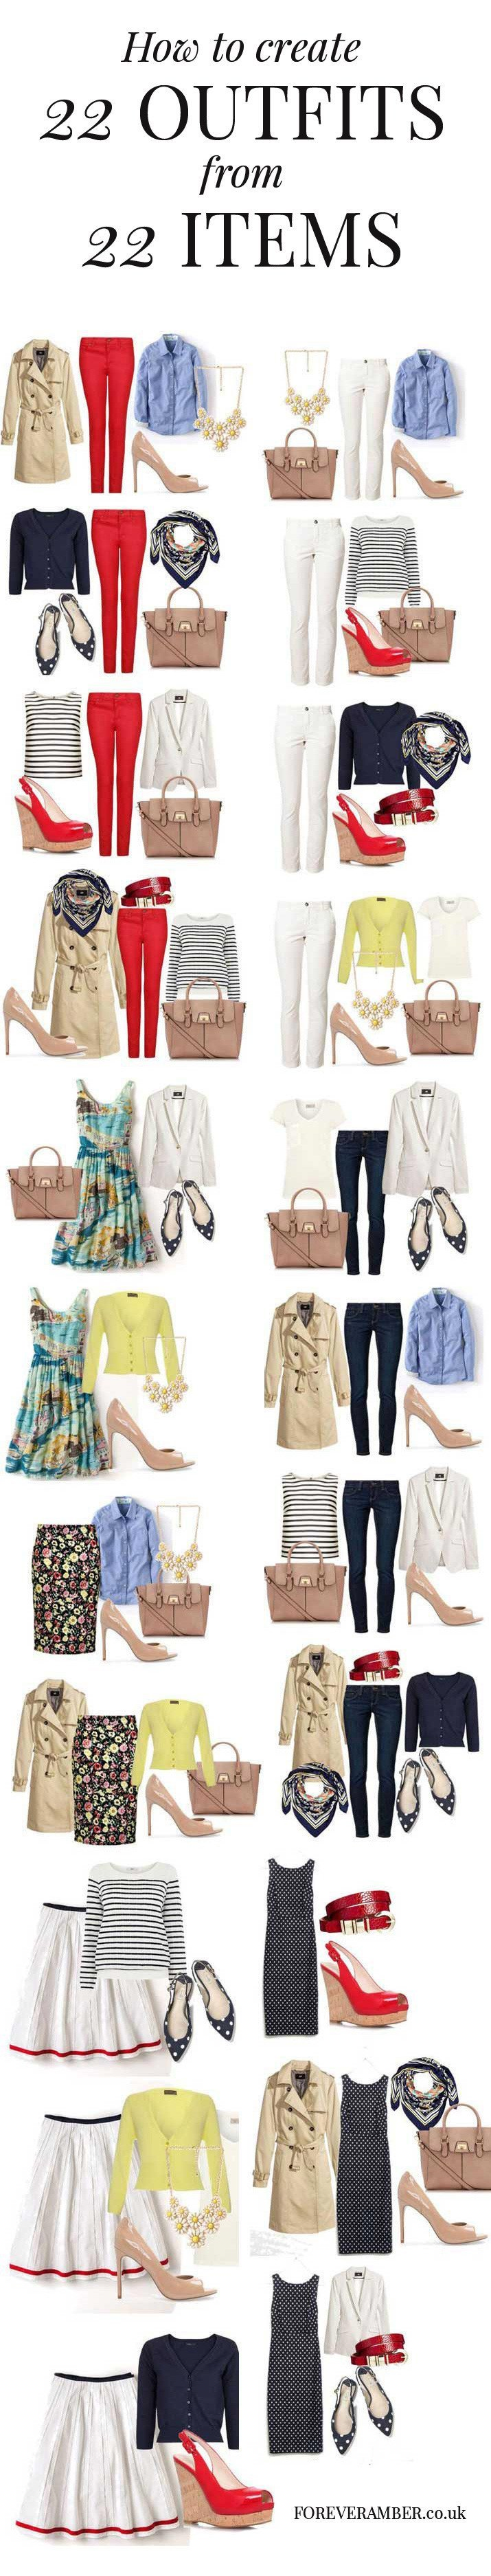 22 outfits from a capsule wardrobe